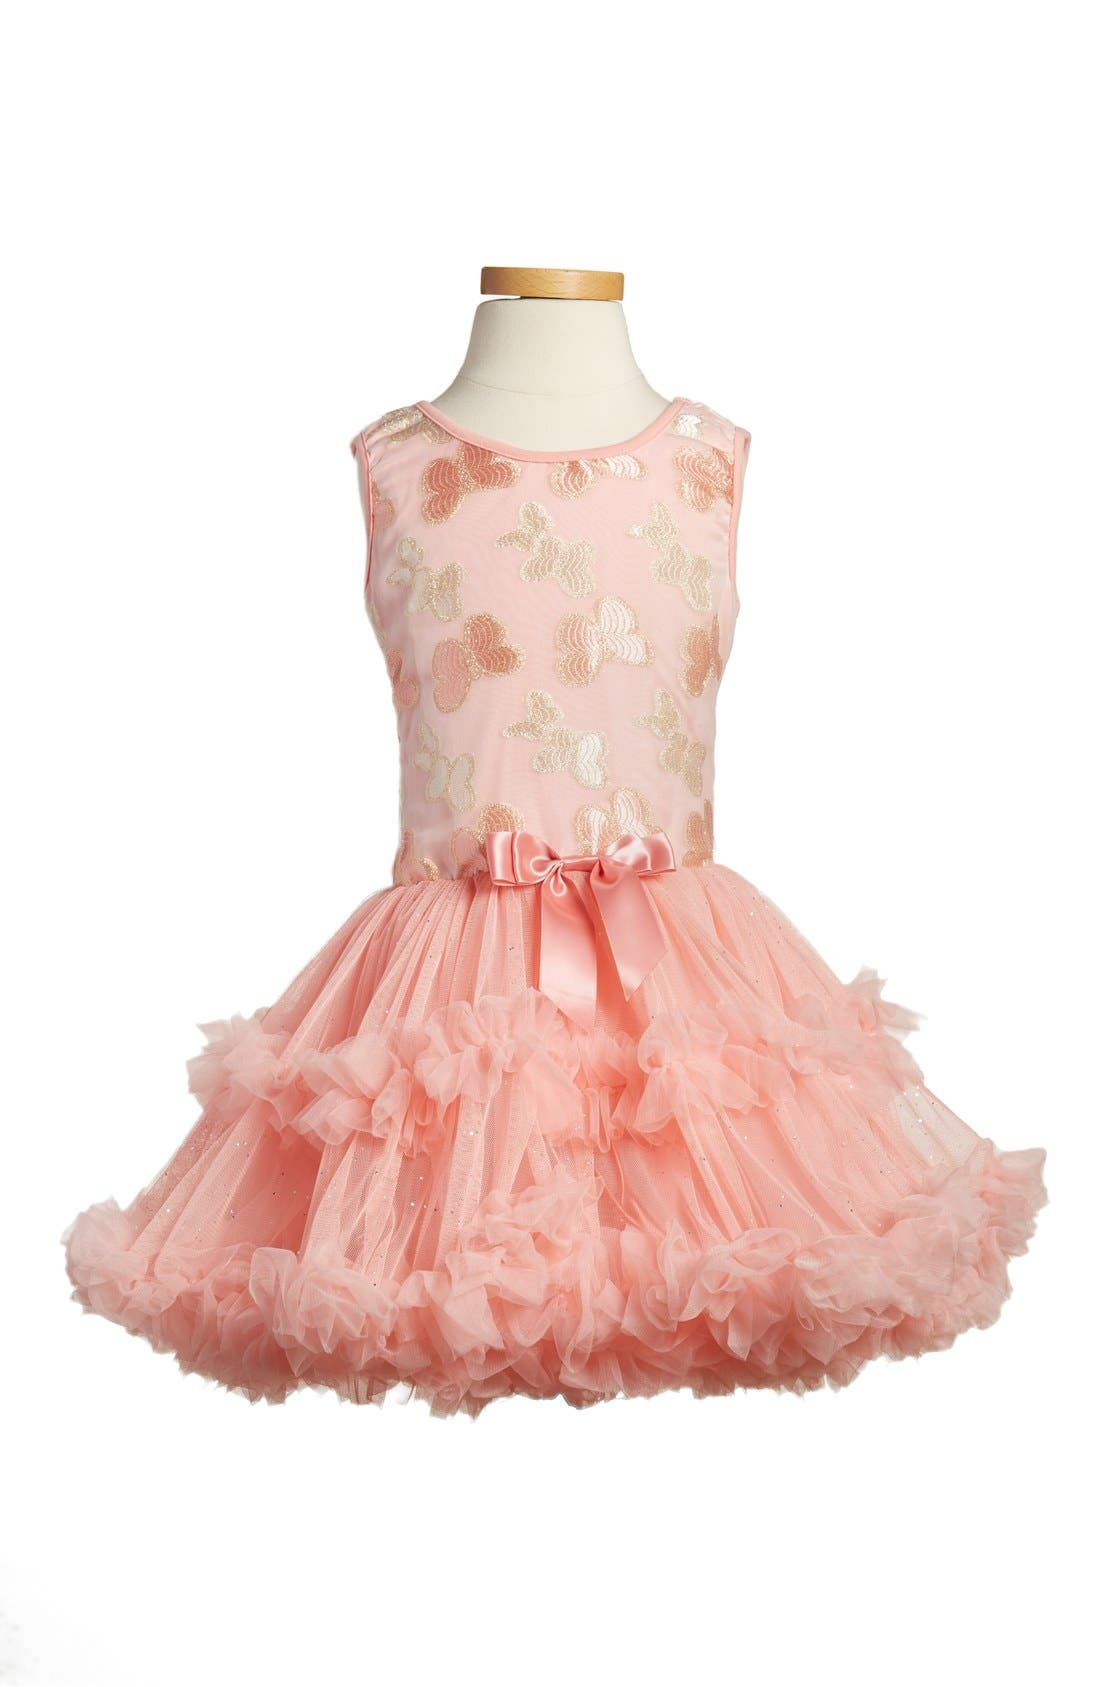 'Butterfly' Sleeveless Party Dress,                         Main,                         color, Peach